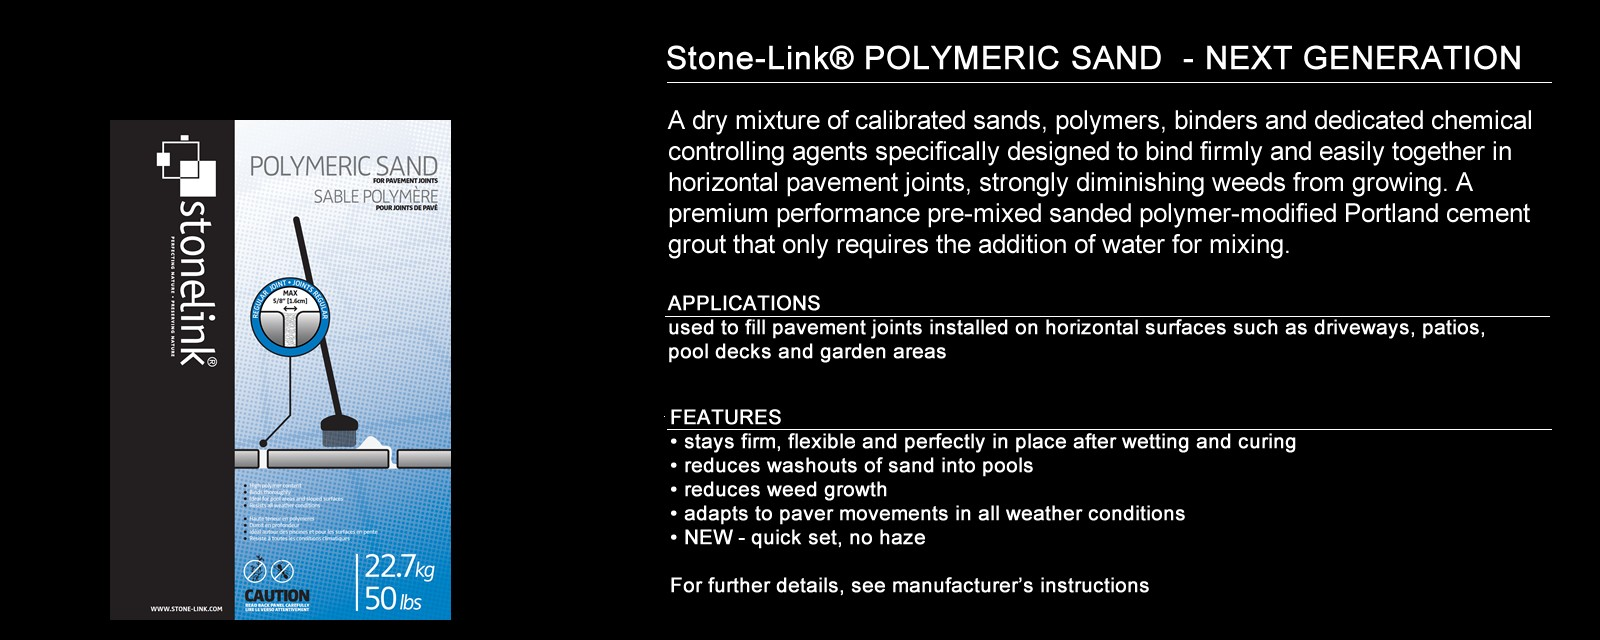 Stone-Link® Polymeric Sand